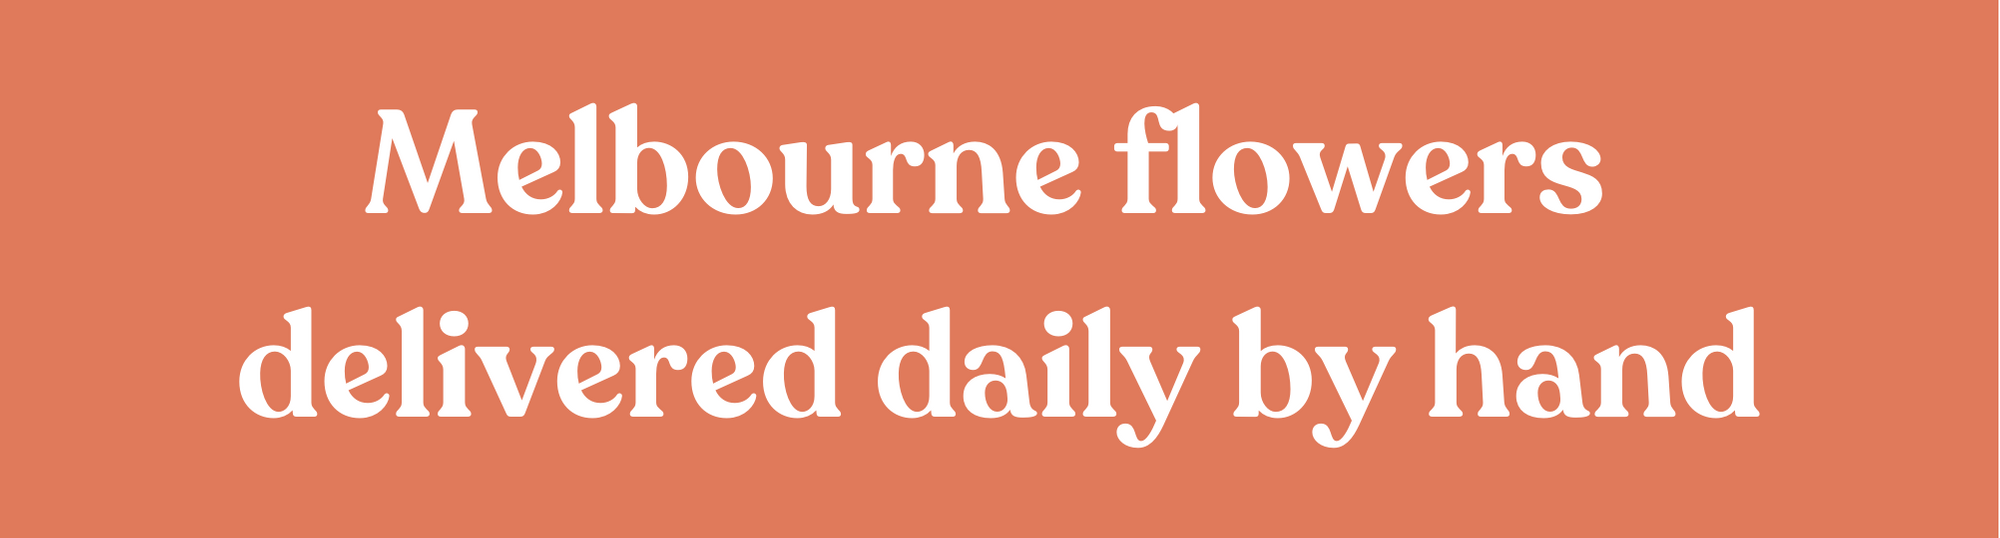 Melbourne Flower Delivery. Melbourne flowers delivered daily by hand.